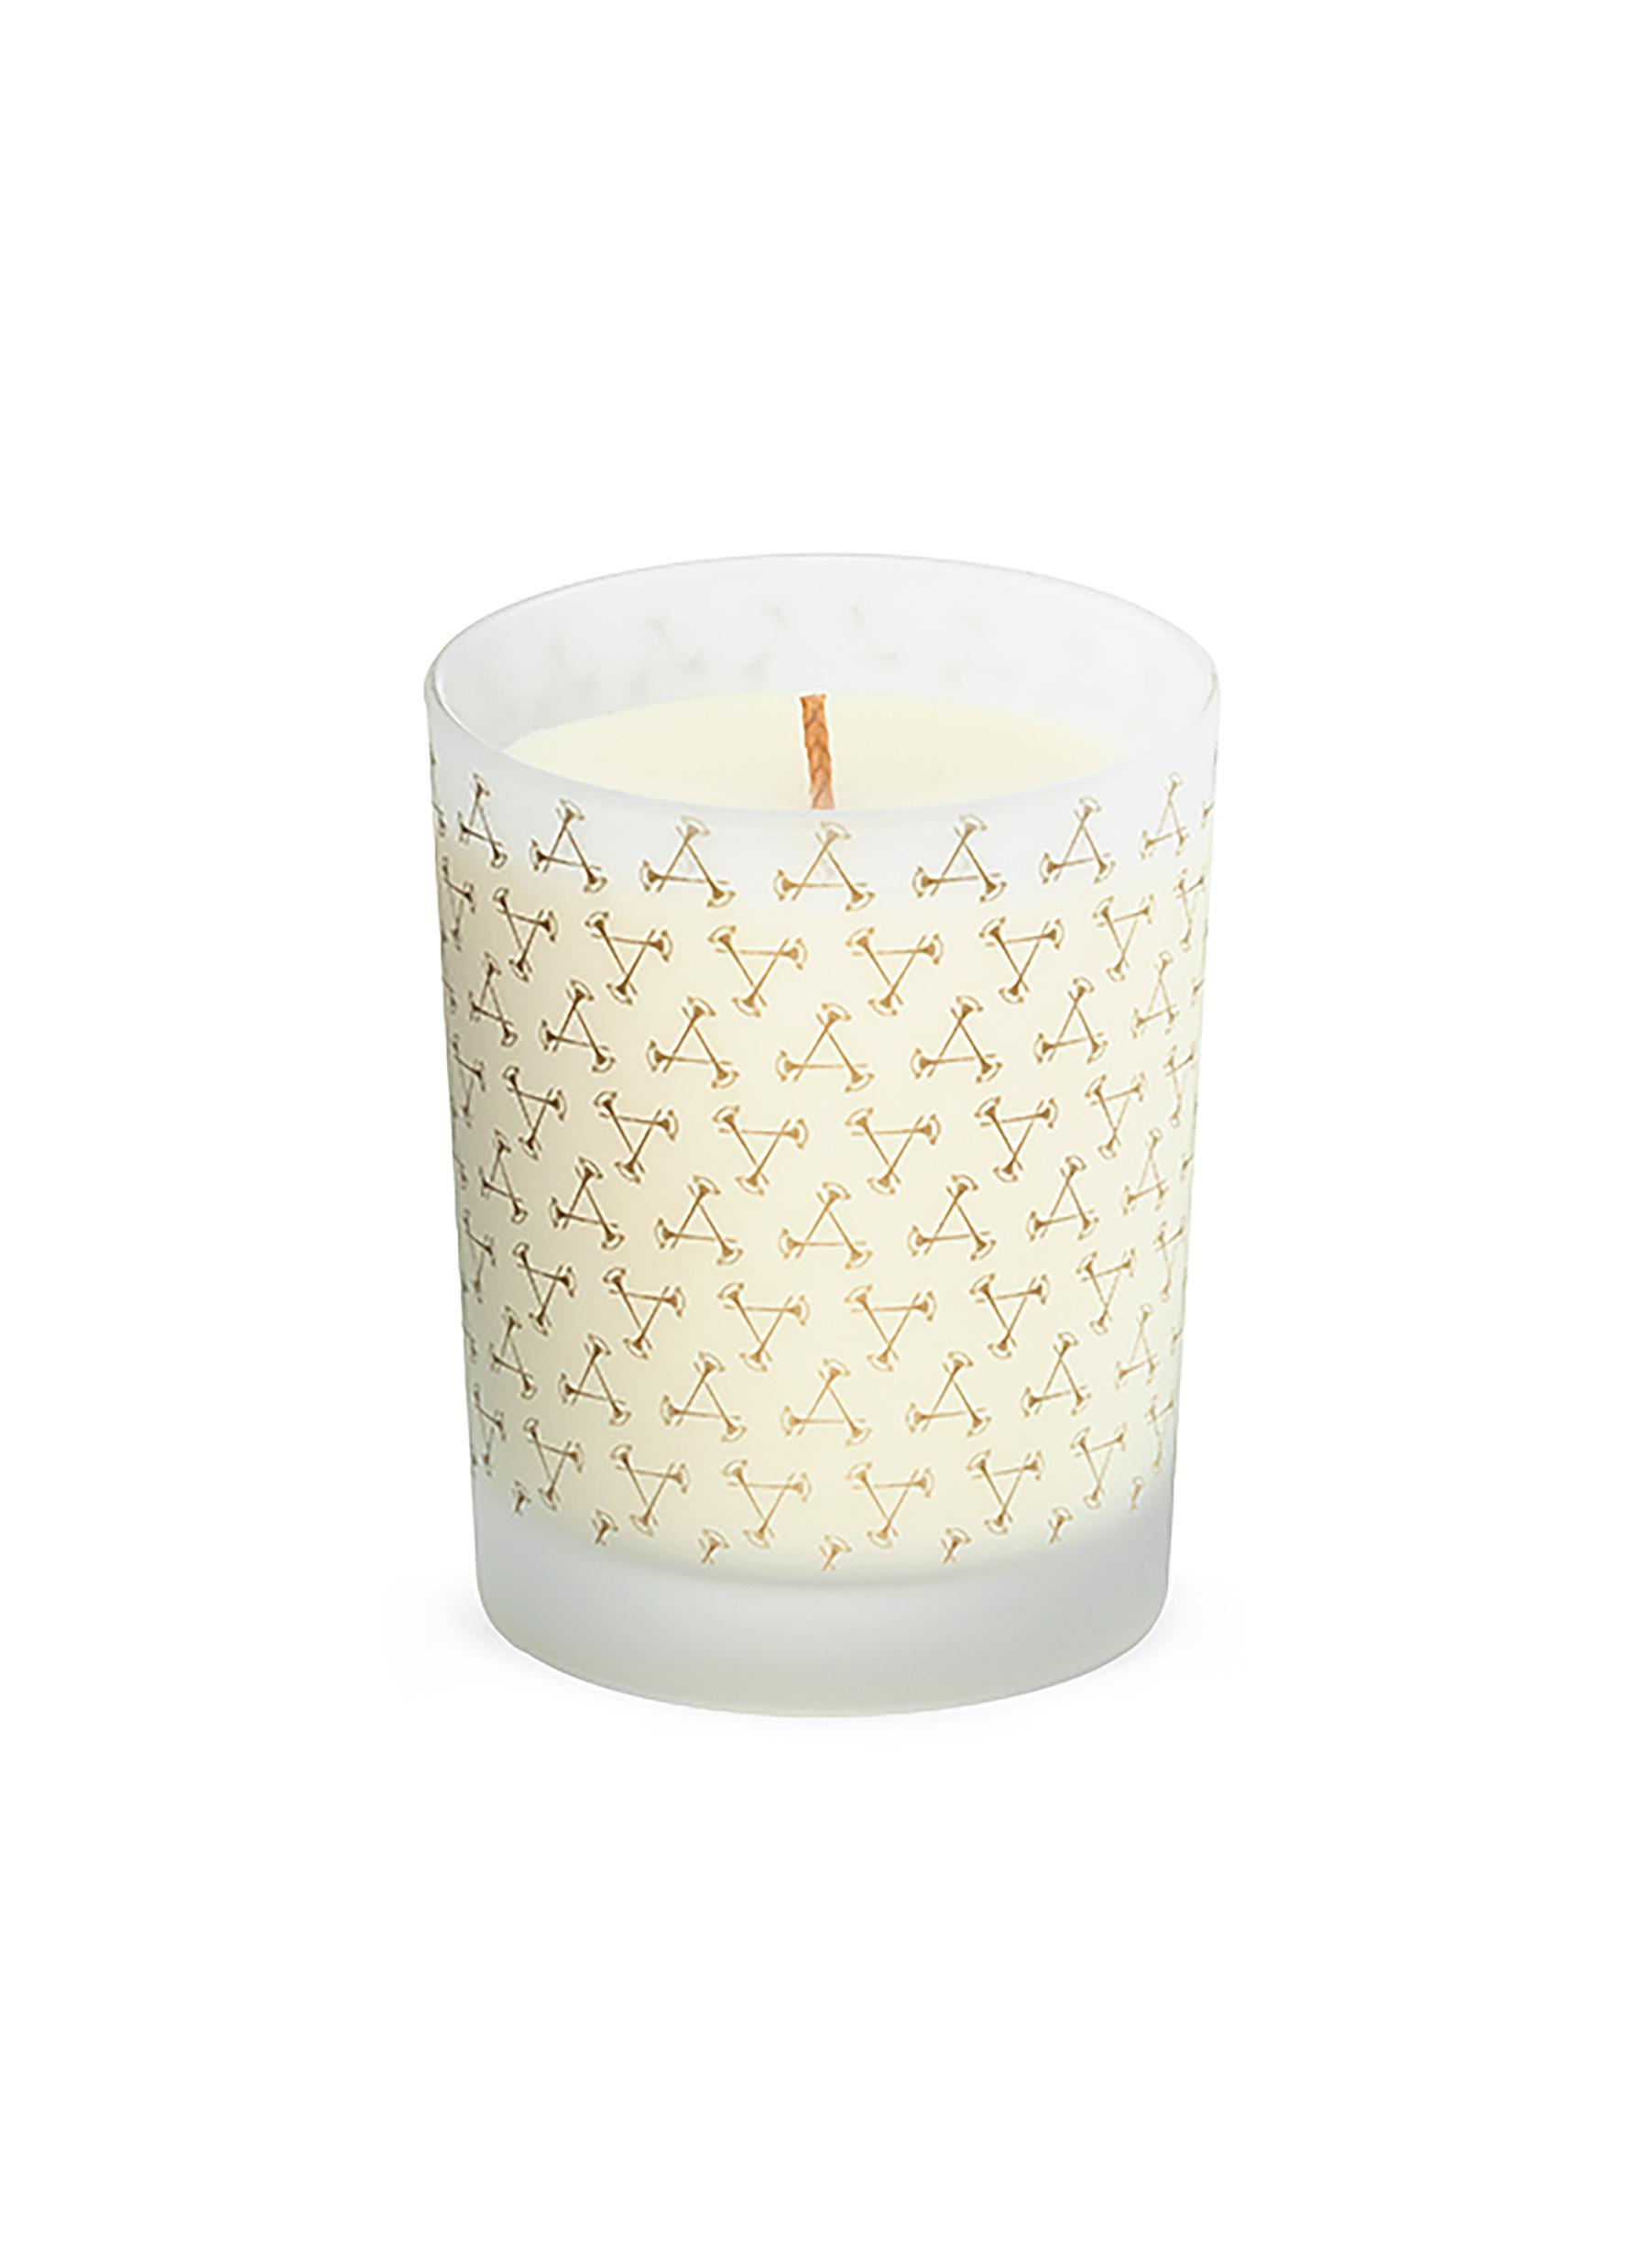 Revive Candle 27cl by Aromatherapy Associates